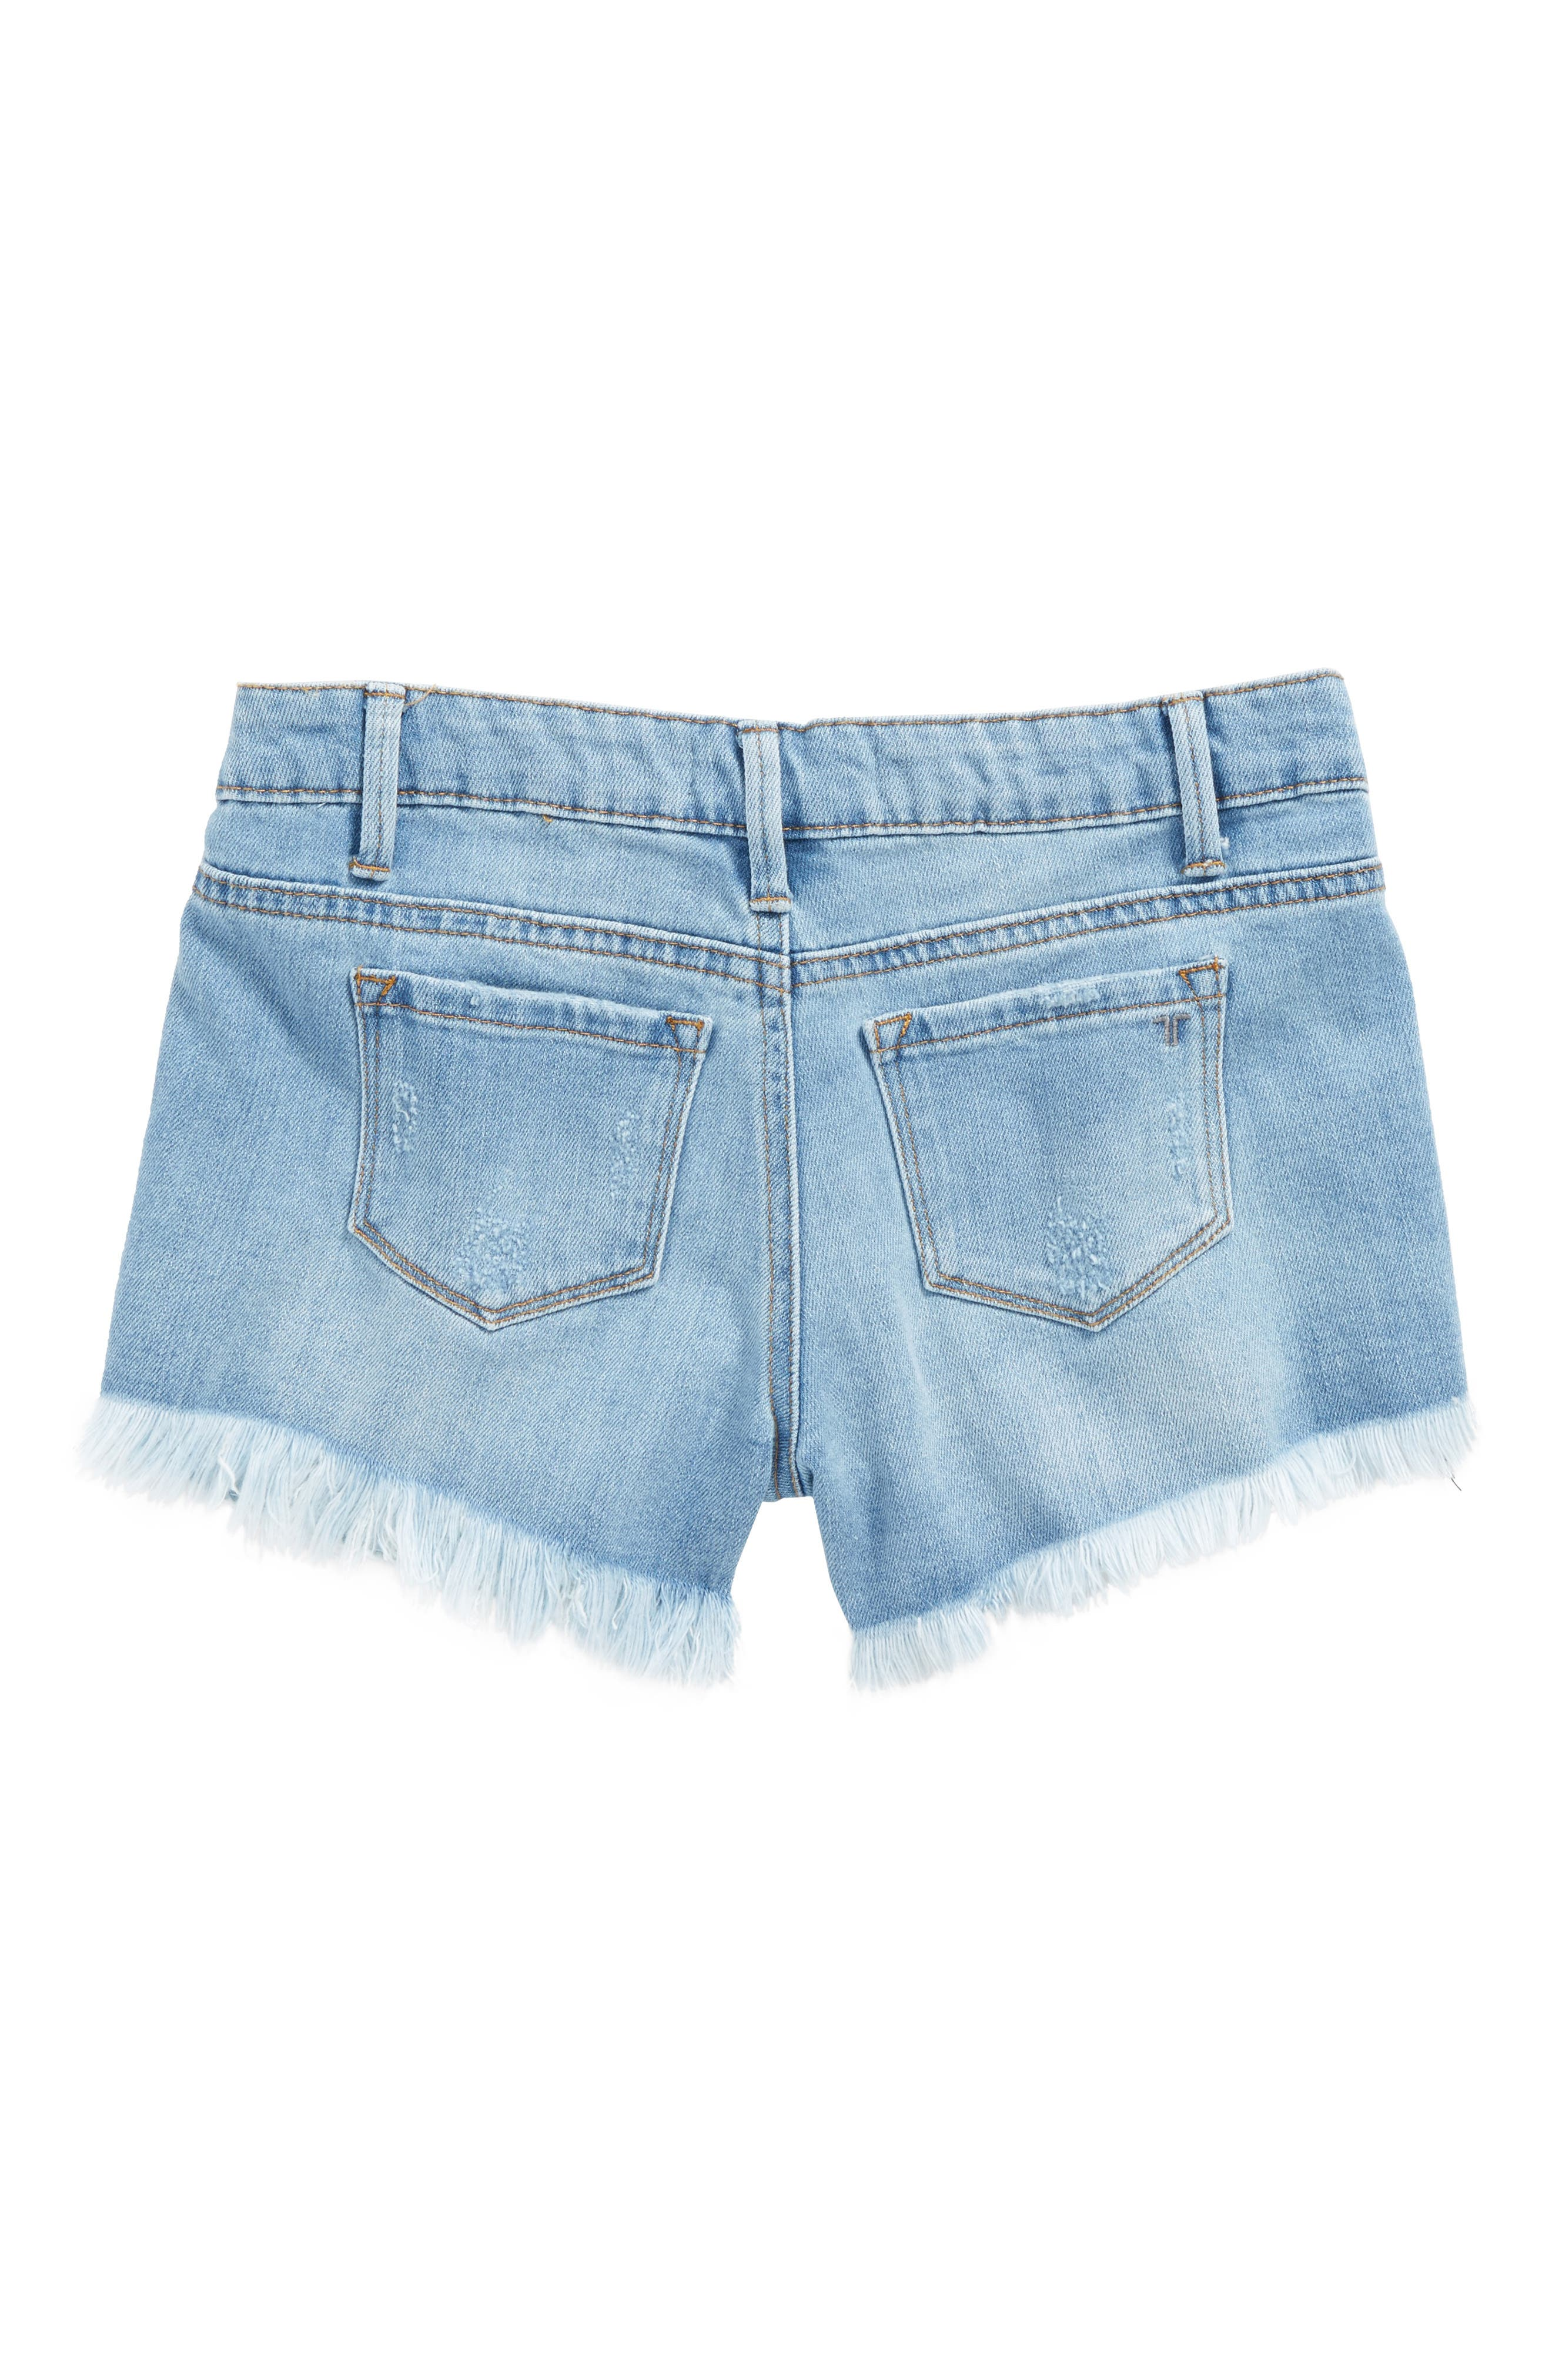 Distressed Cutoff Denim Shorts,                             Alternate thumbnail 2, color,                             400